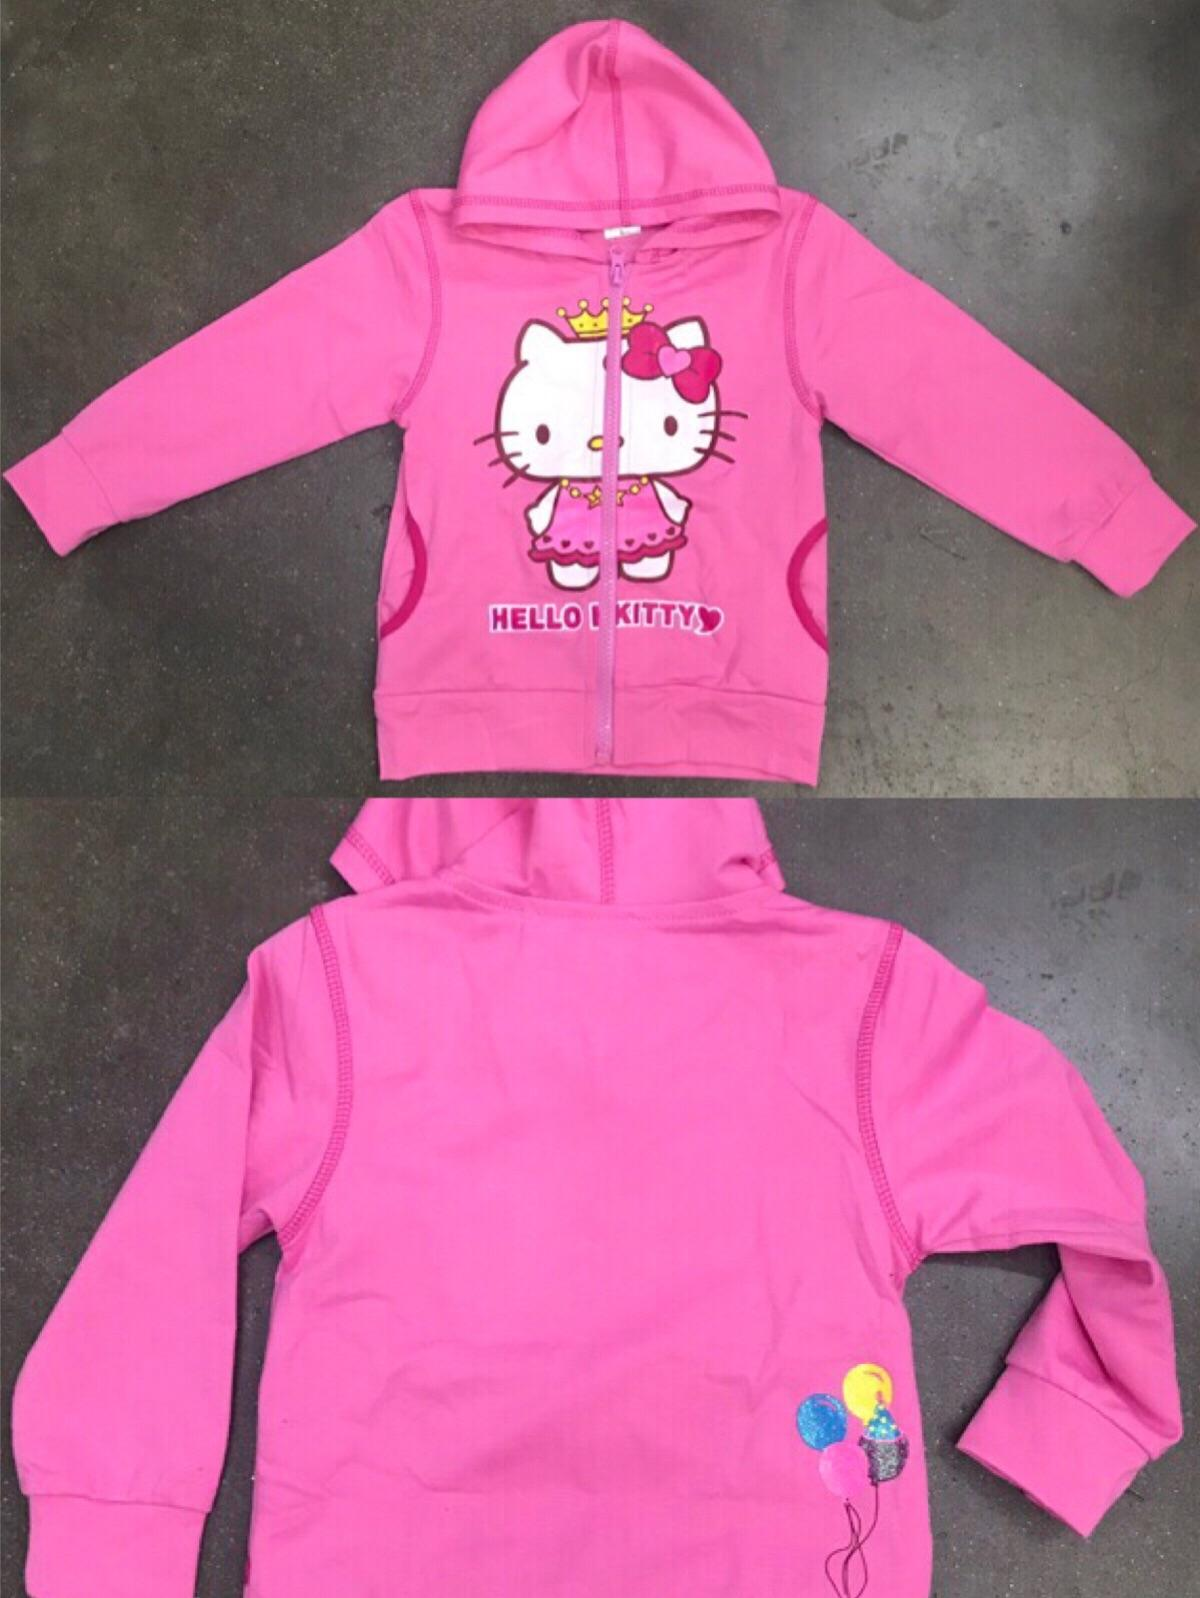 f0c013f78 Girls Jackets for sale - Coats for Girls online brands